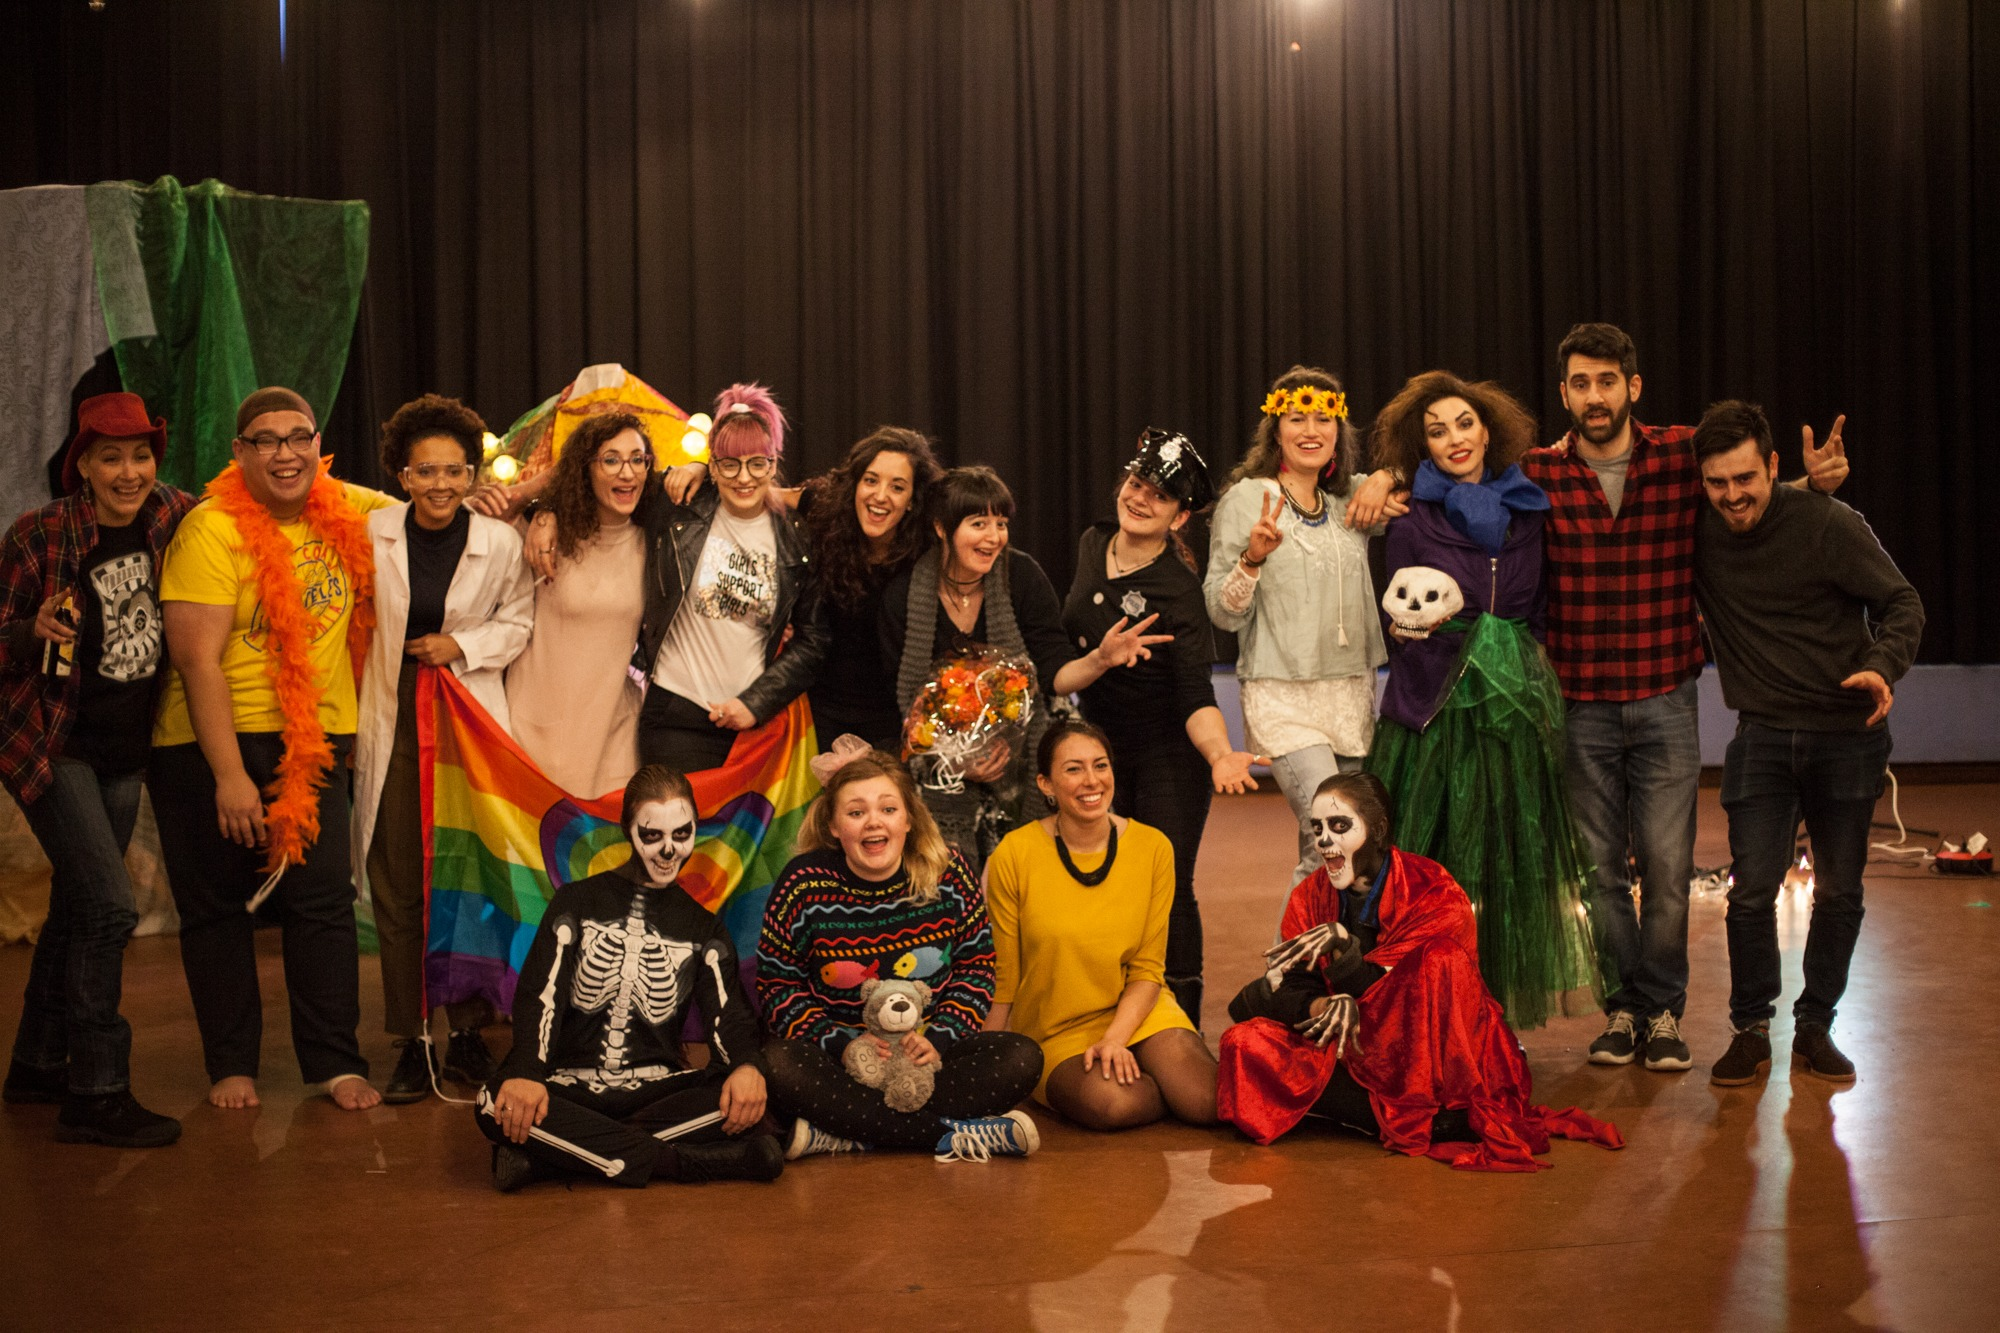 Act Attack group photo. Some people dressed in carnival or halloween costumes